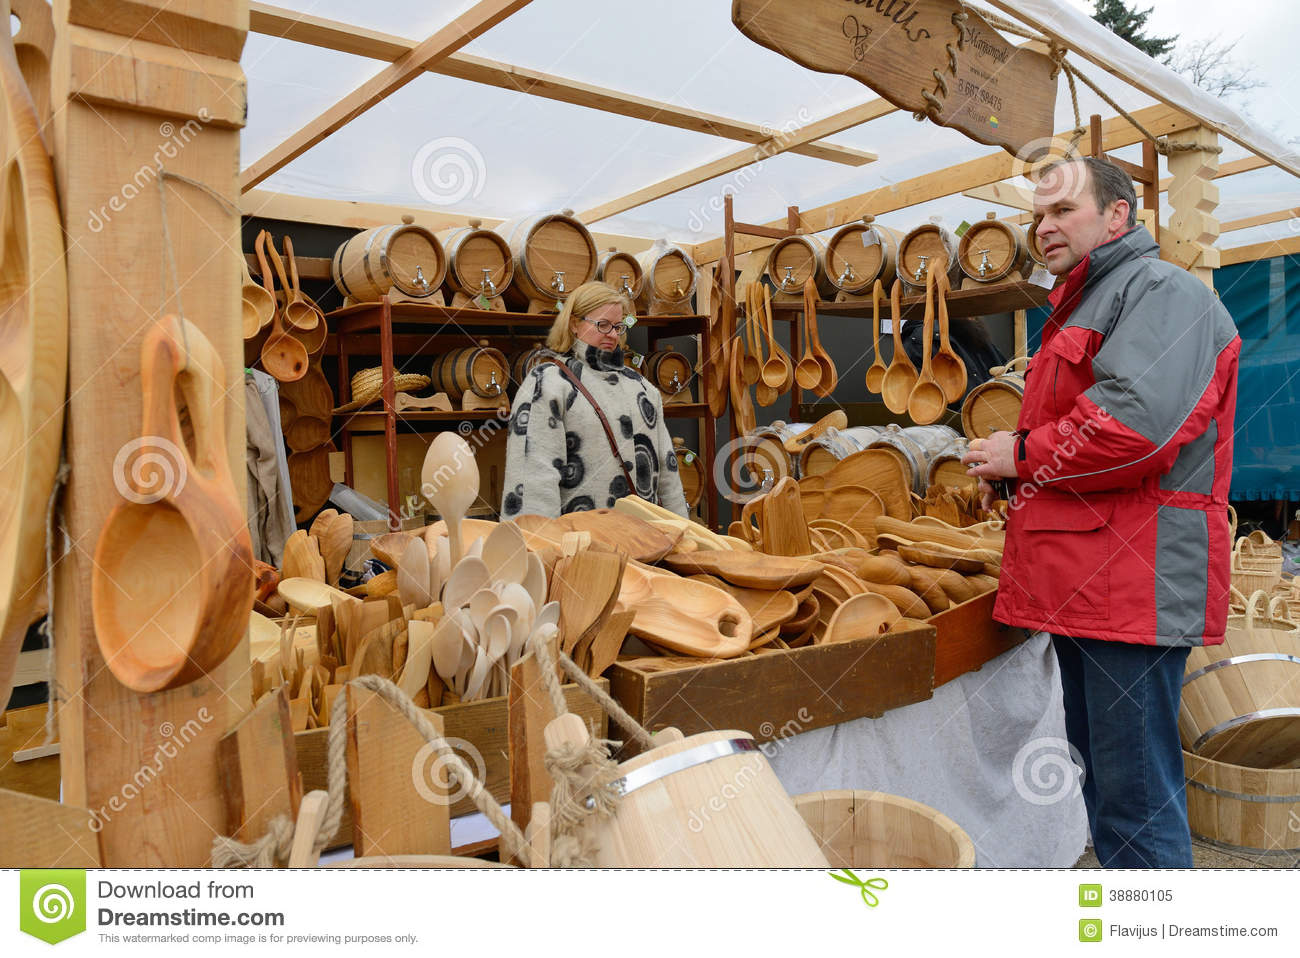 ... crafts fair - Kaziuko fair on Mar 8, 2014 in Vilnius, Lithuania